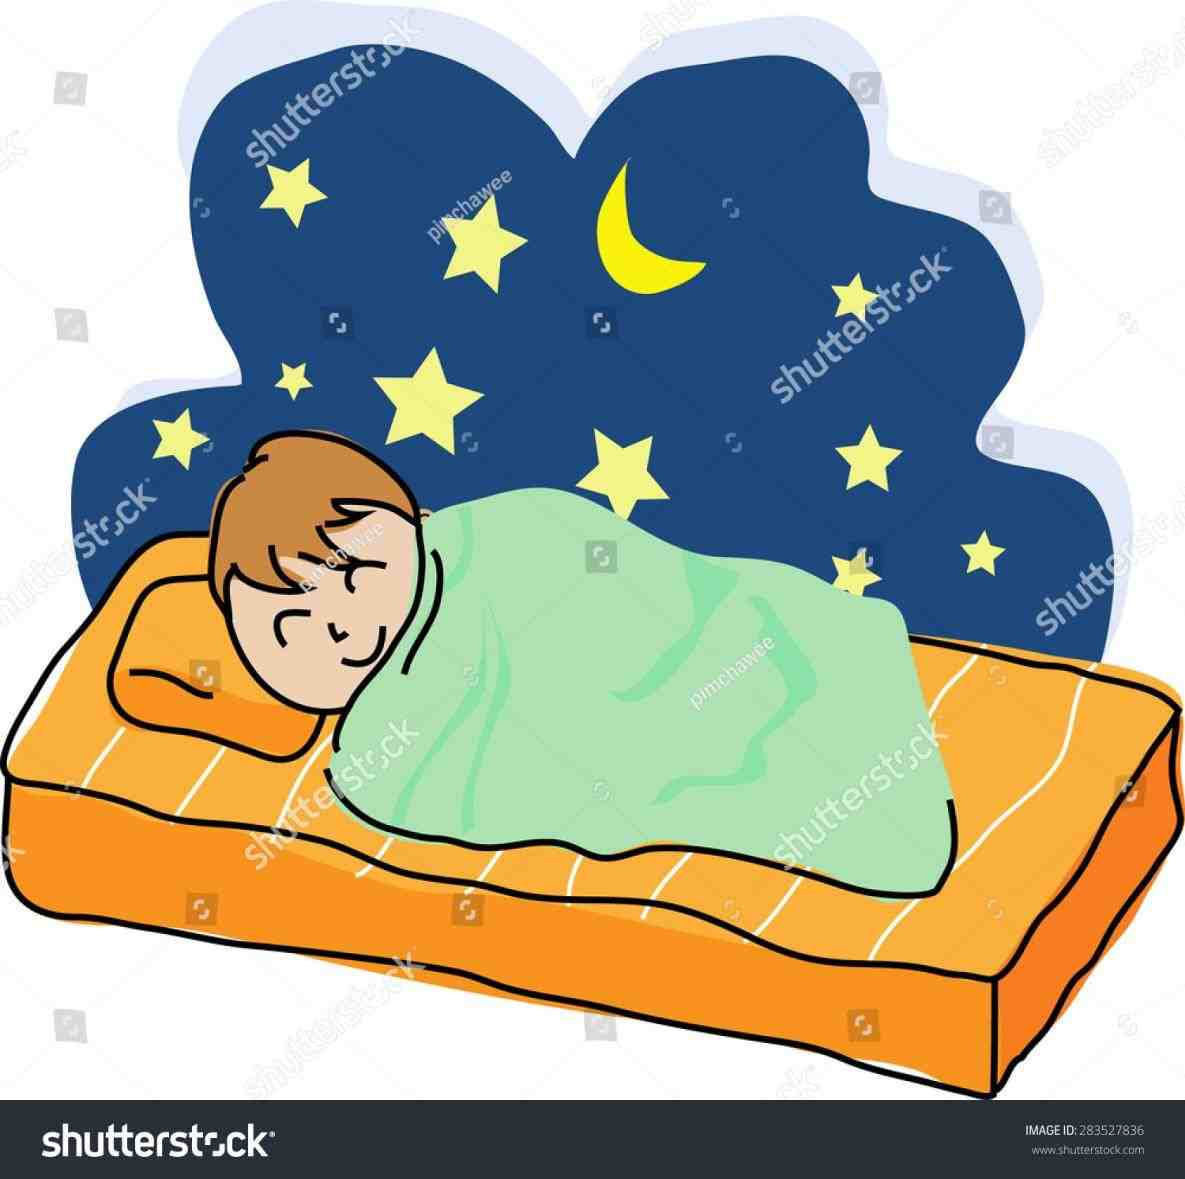 Clipart Going To Bed & Clip Art Images #18693, Going To Bed Clip Art.